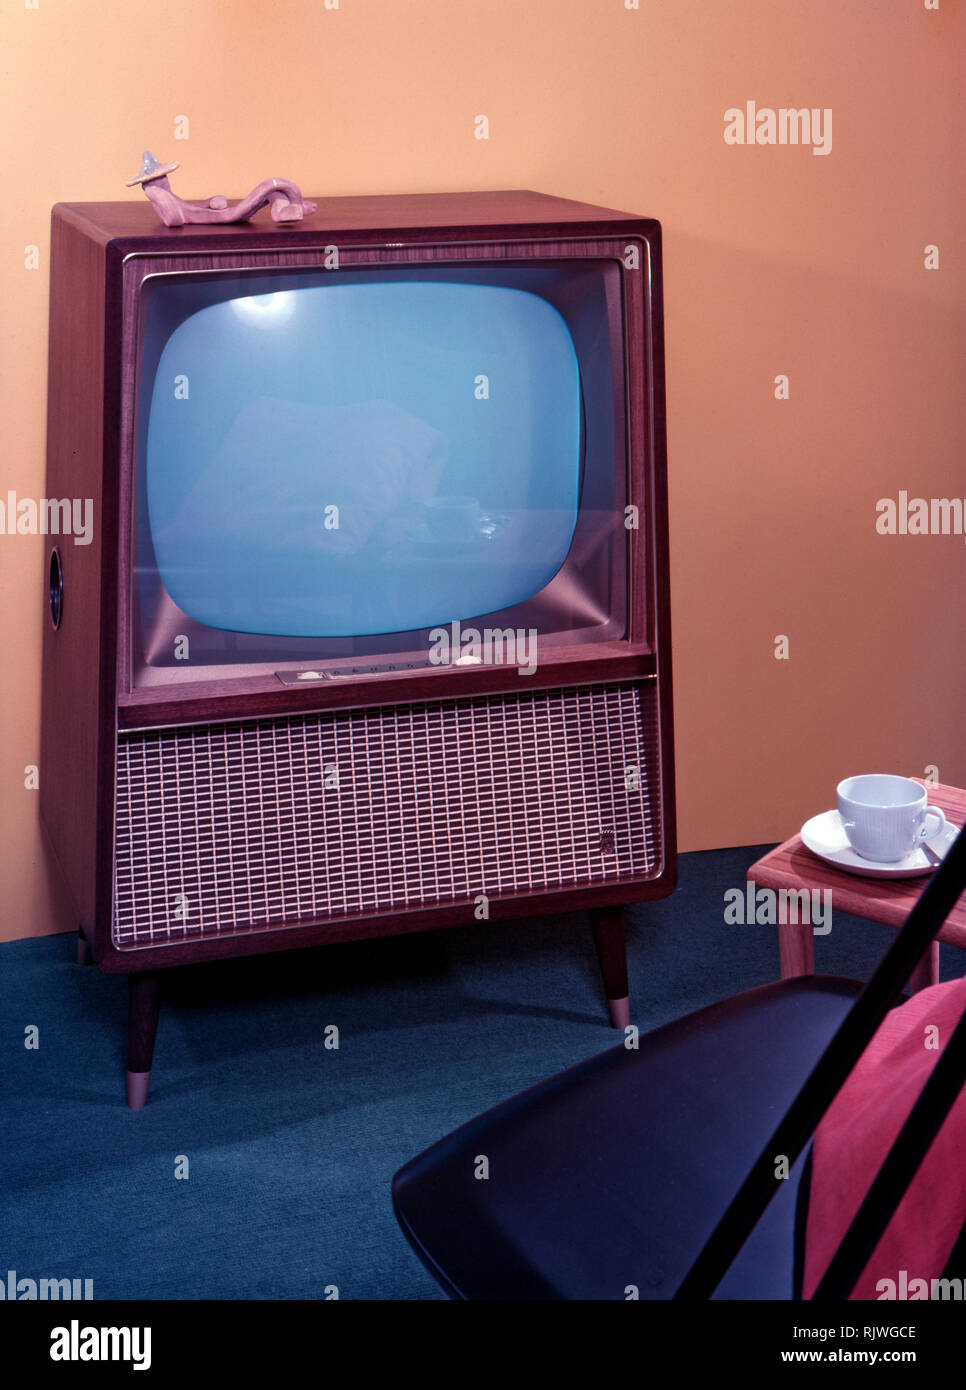 Television in the 1950s. A Grundig television set that was available for customers 1957. A typical 1950s design with a wooden case. ref BV65-4 - Stock Image